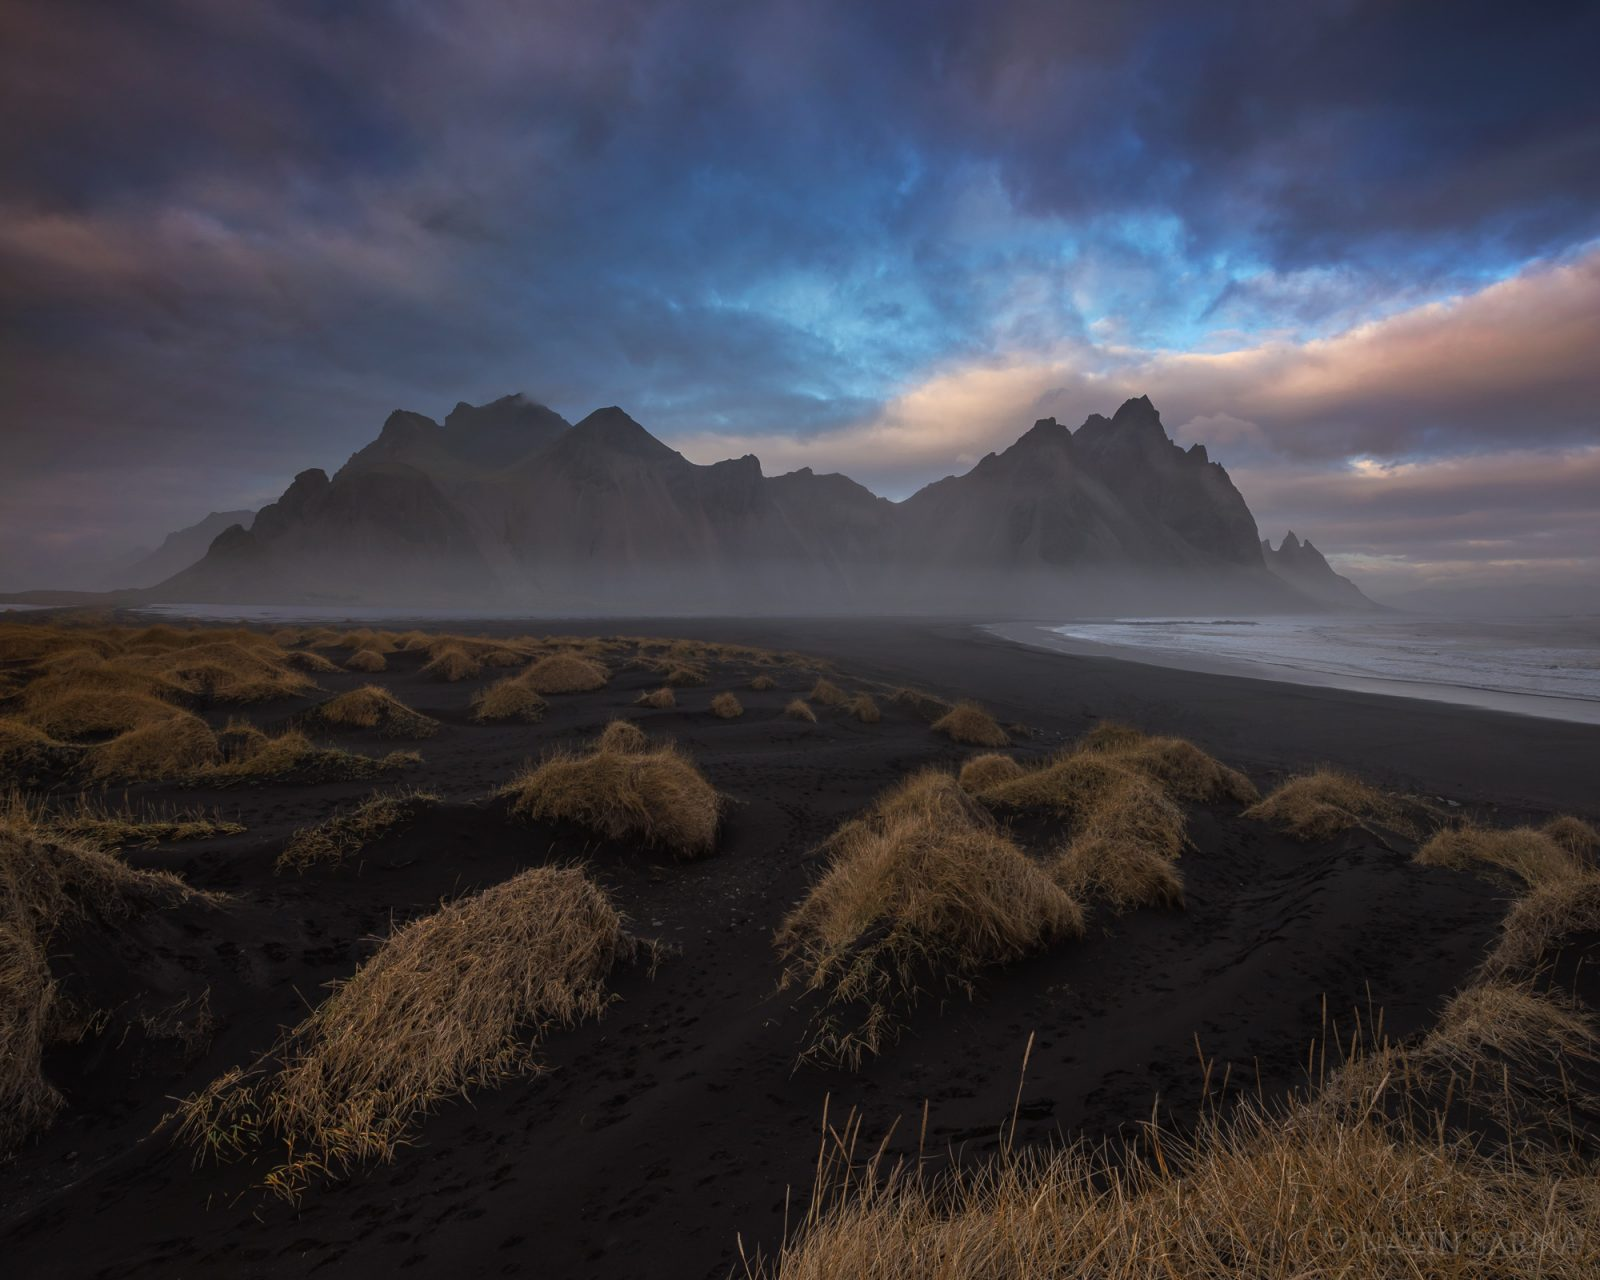 A moment of color at sunset at Vesturhorn mountain